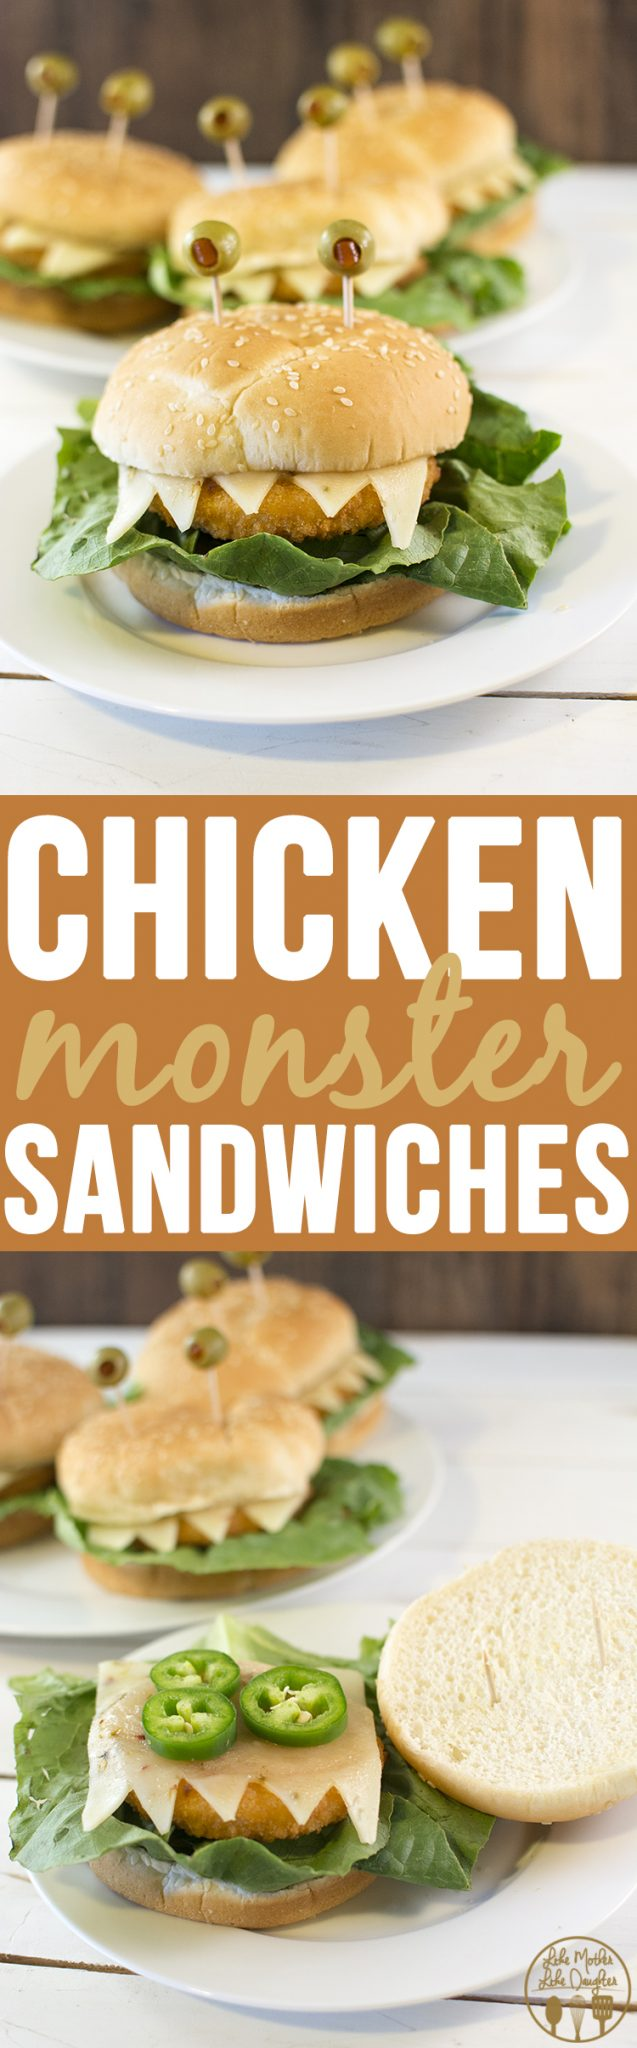 Chicken sandwich monsters - these adorable monster sandwiches are not only easy to make, they're fun to eat too!